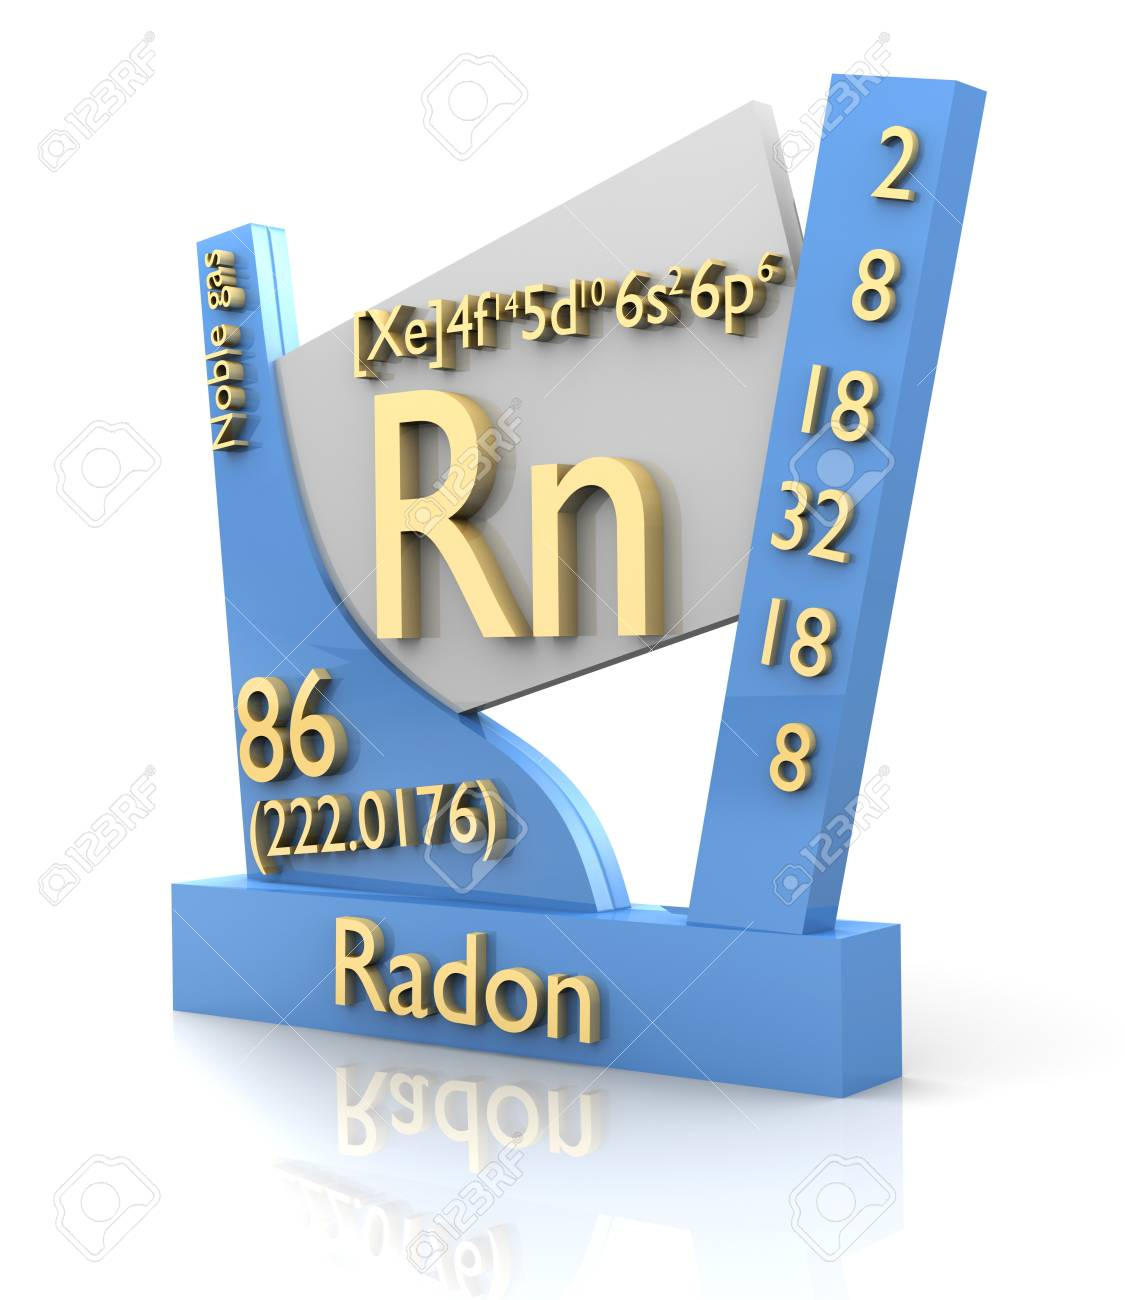 Radon form Periodic Table of Elements - 3d made Stock Photo - 11884381